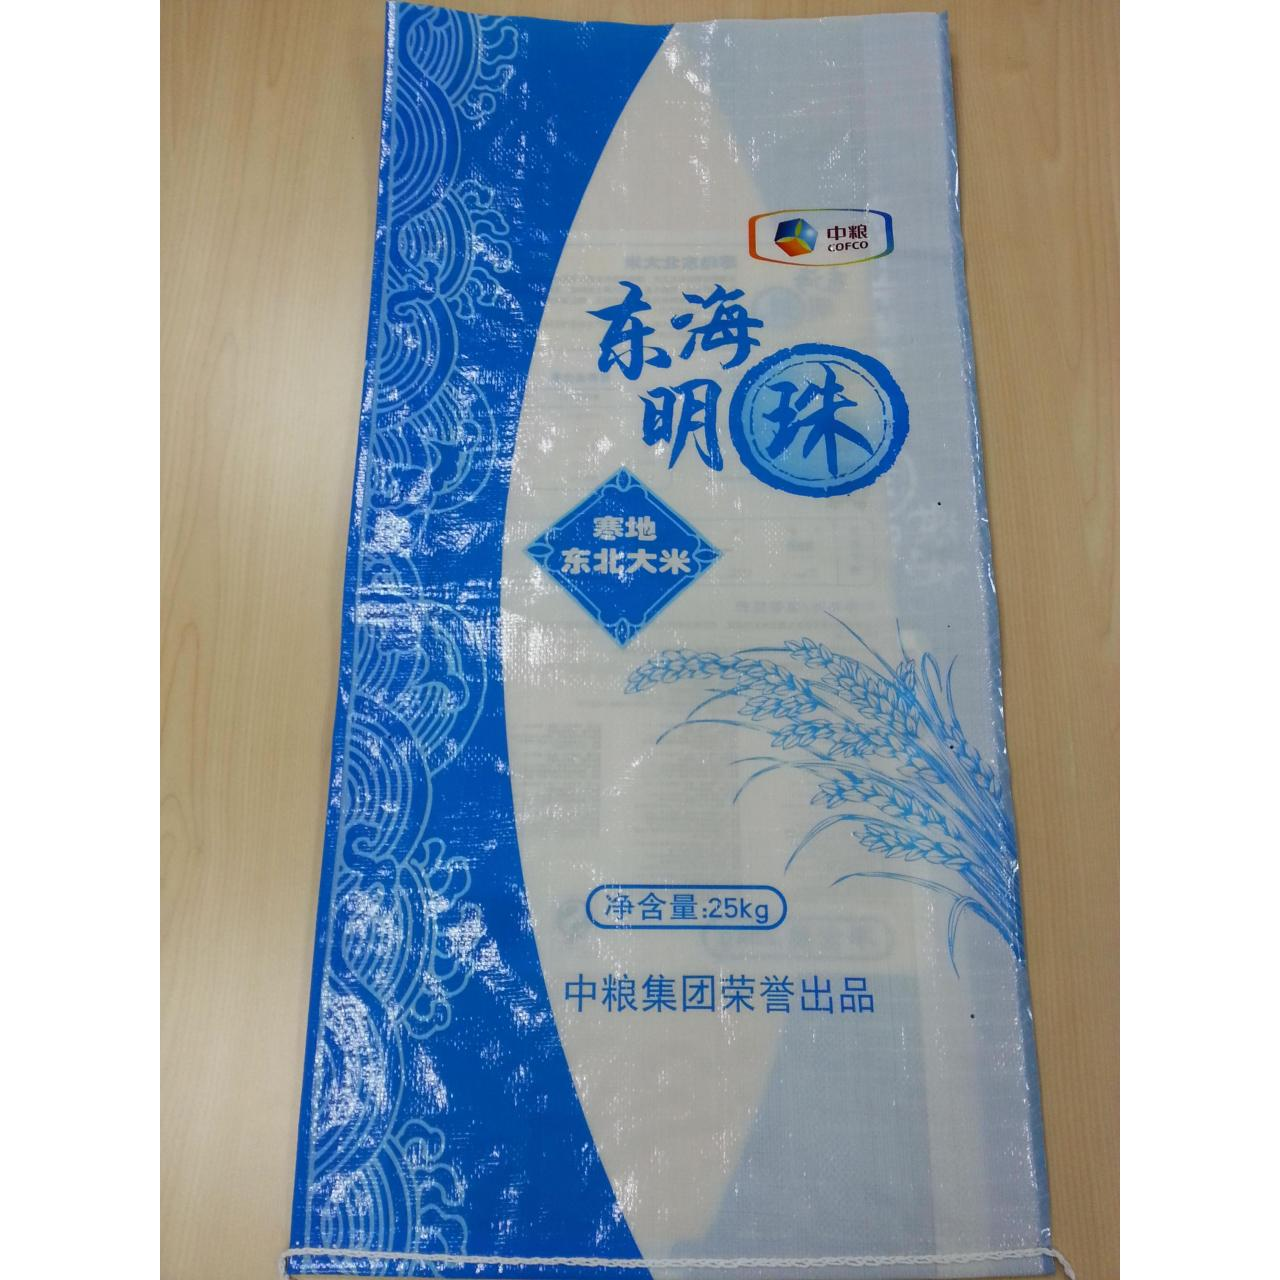 BOPP outside Coated Sacks Manufactures